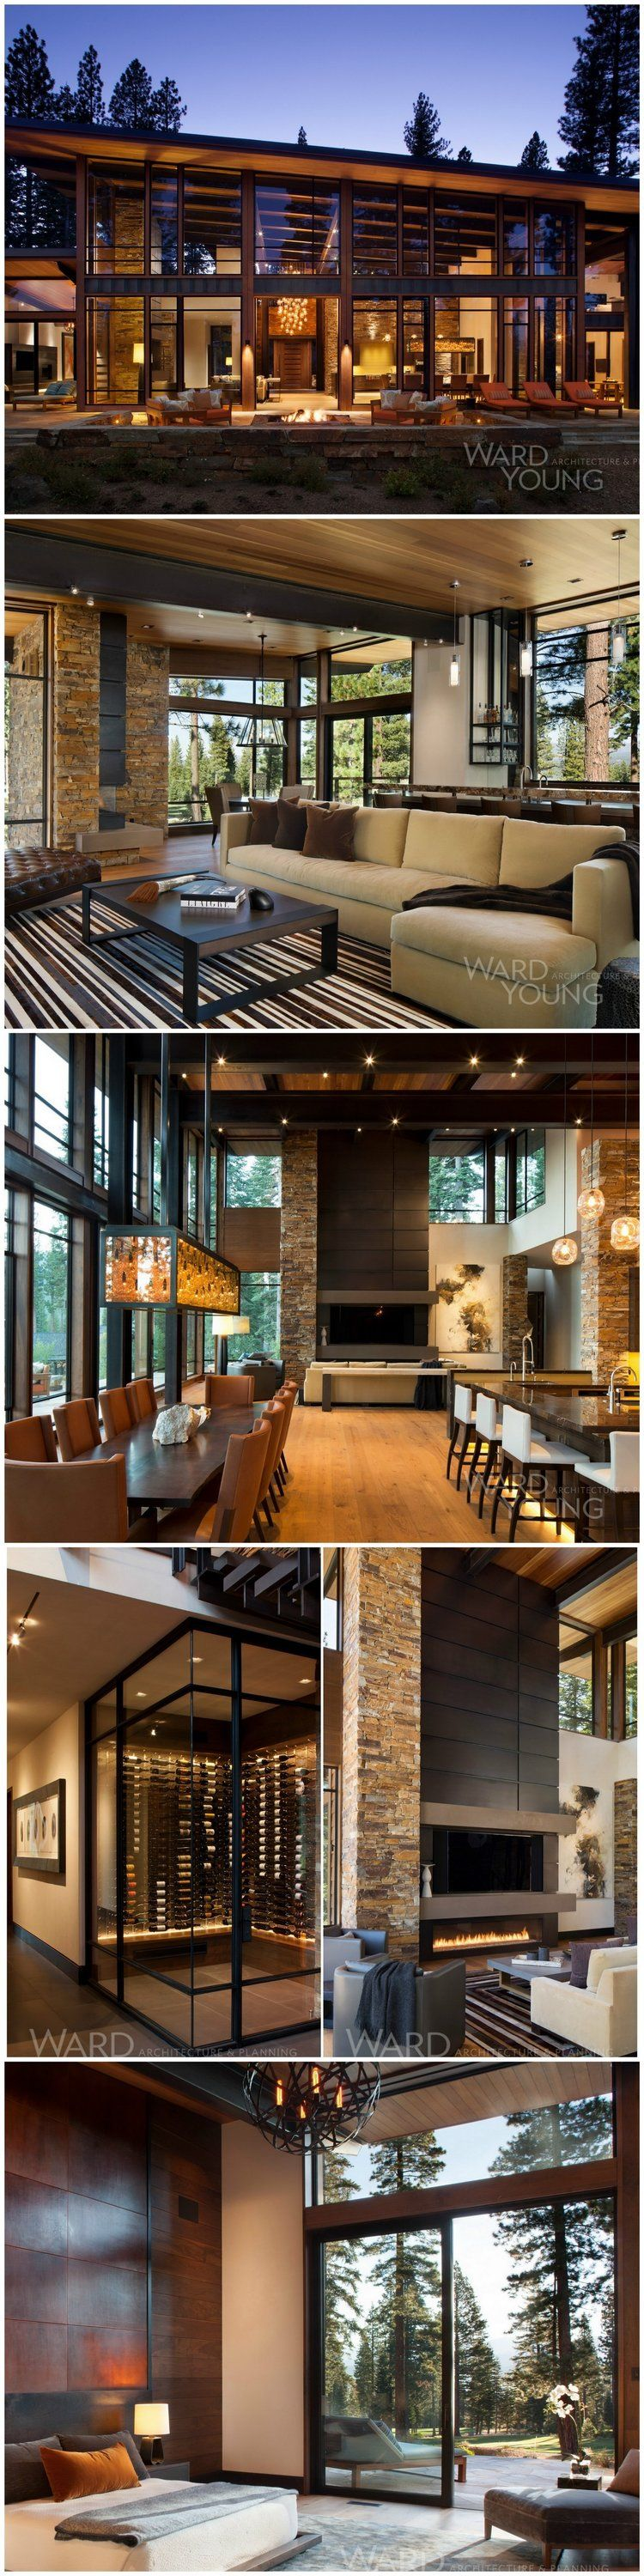 Martis Modern Mountain Home by Ward Young Architecture and Planning on ranch house deck designs, beach house deck designs, lake house deck designs,